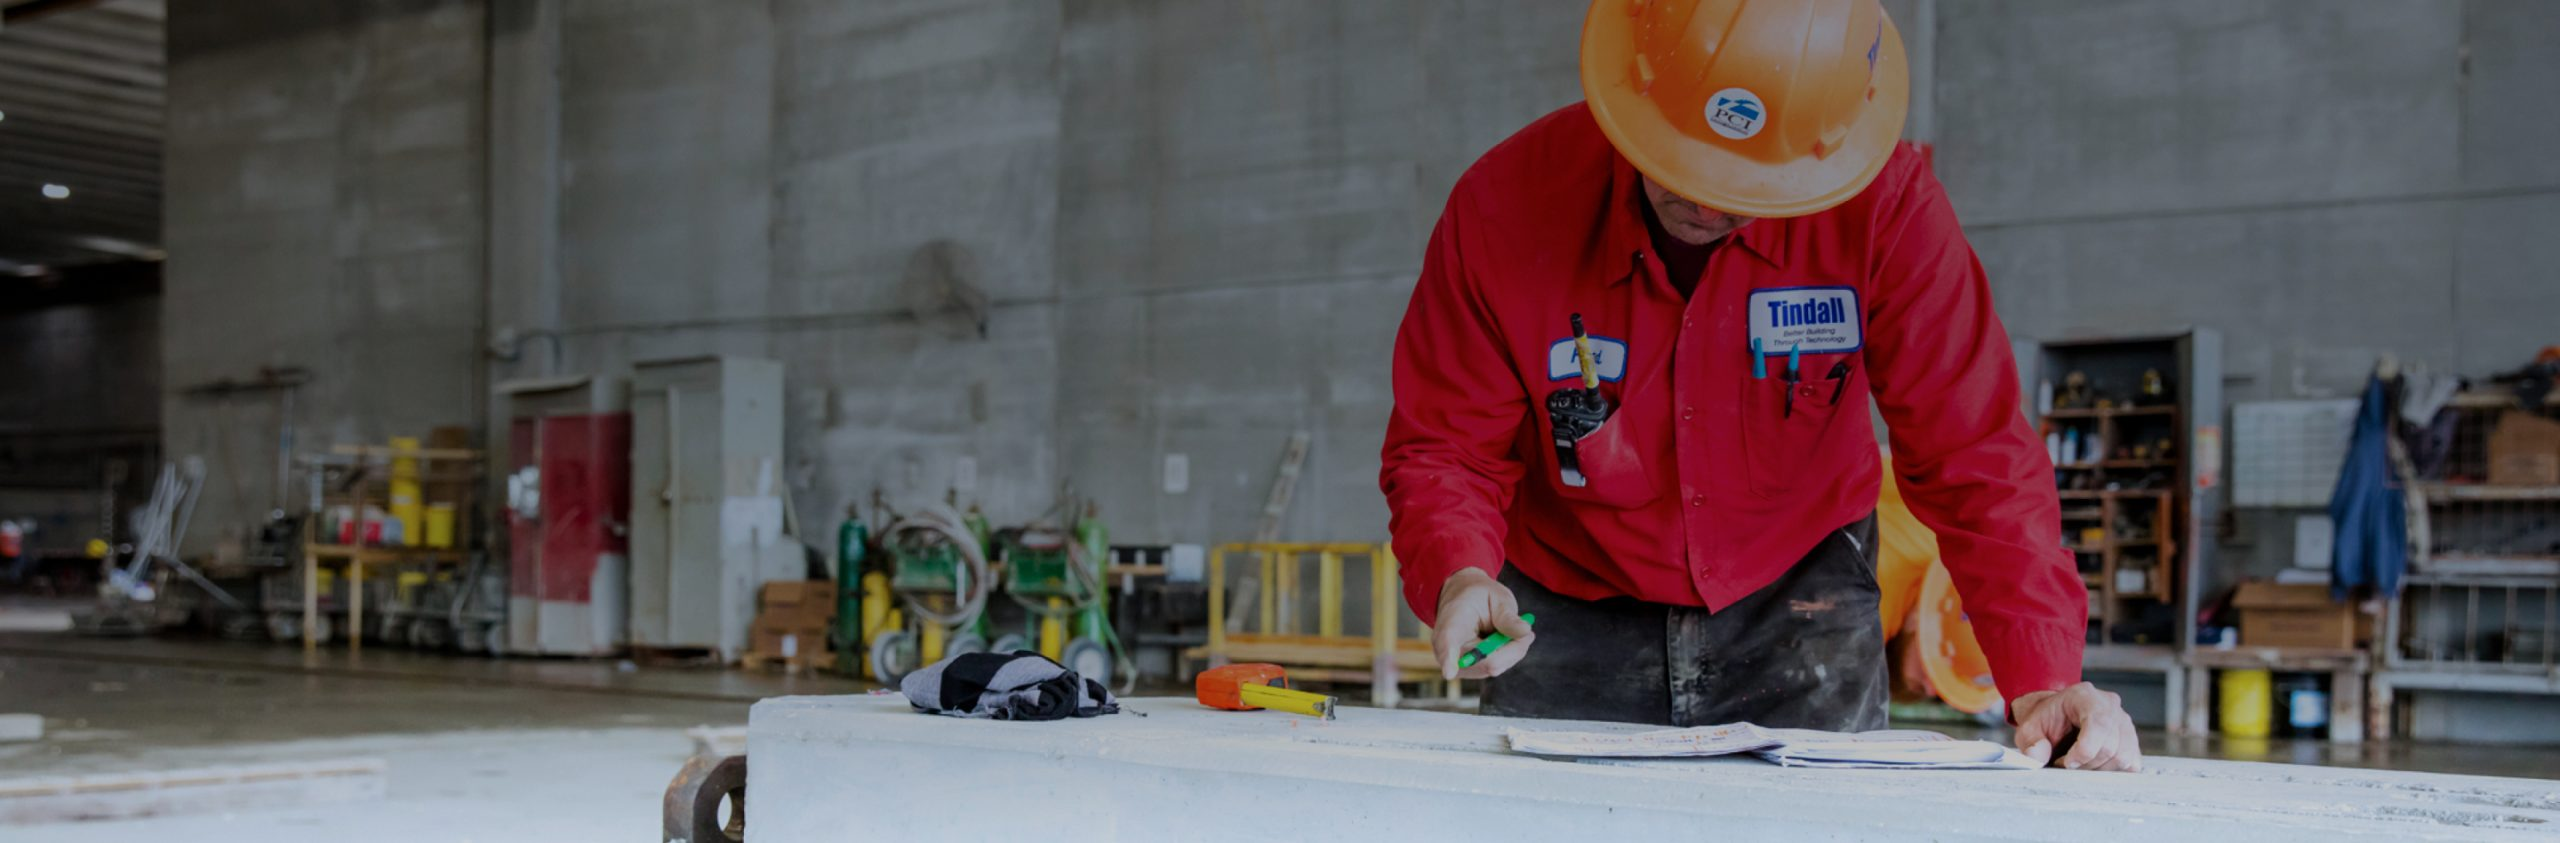 Tindall worker working on plans for a precast concrete construction project